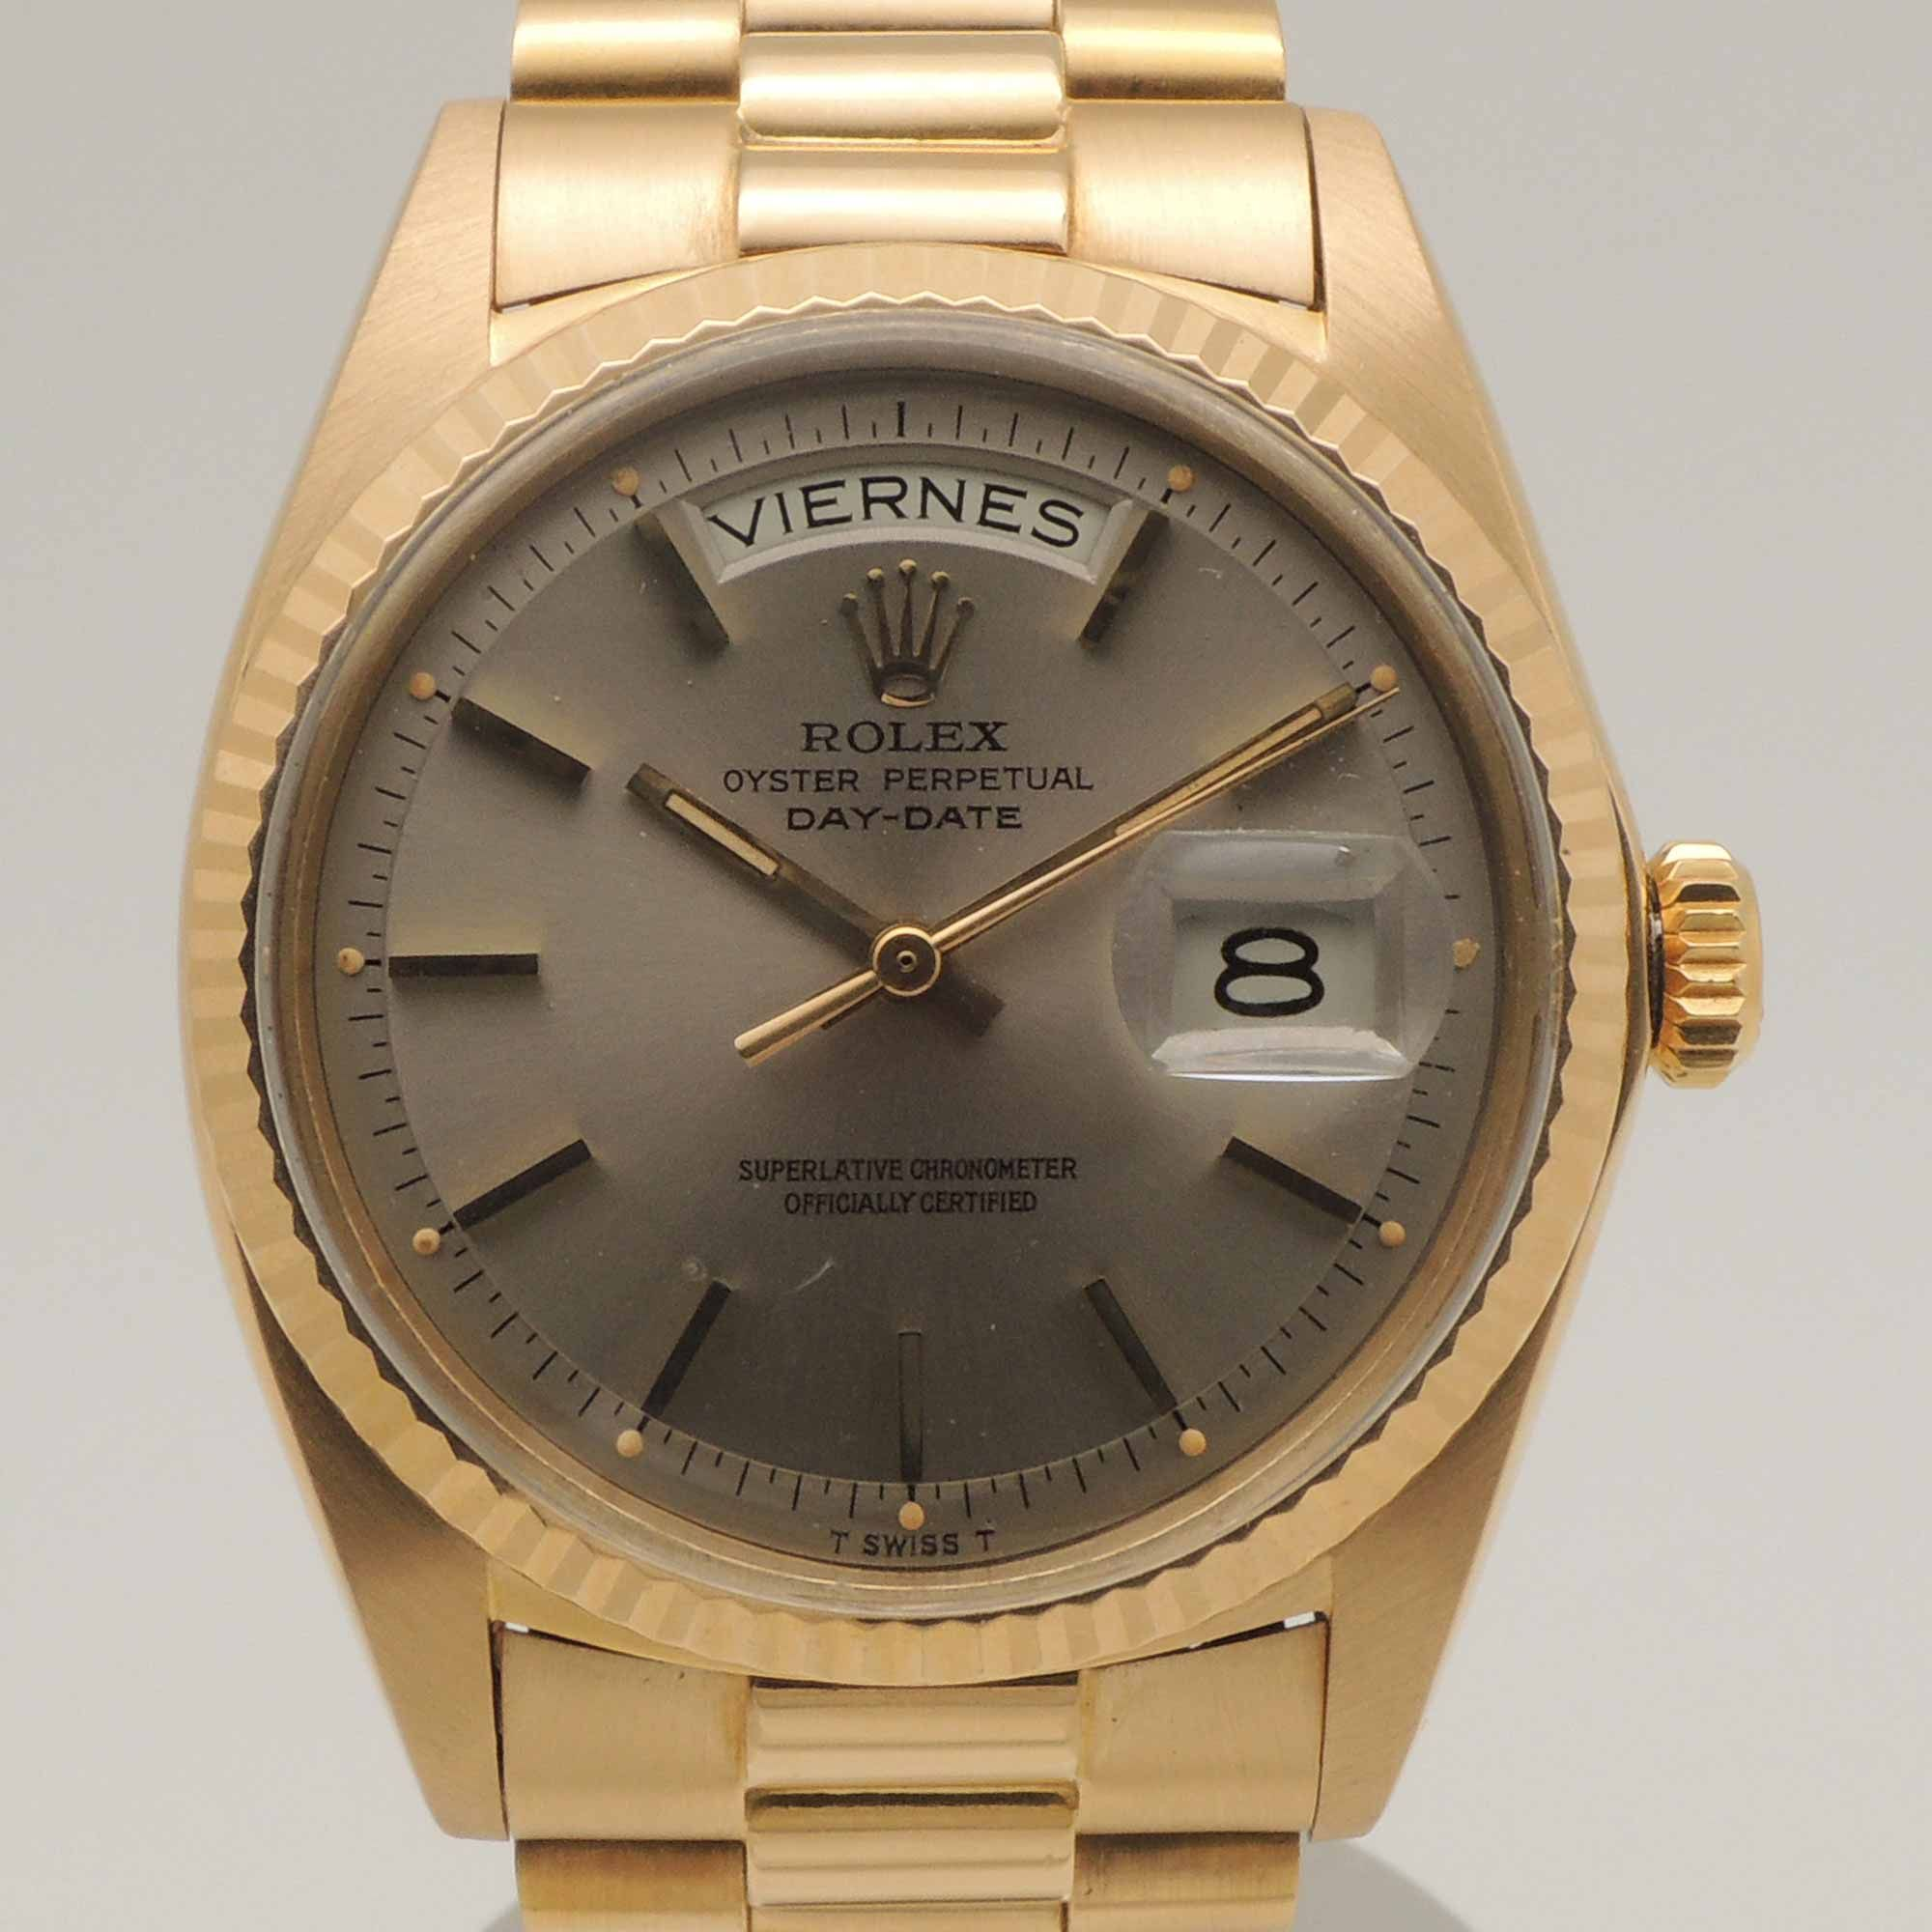 Rolex Day Date 1803 01750 Horloges Watches